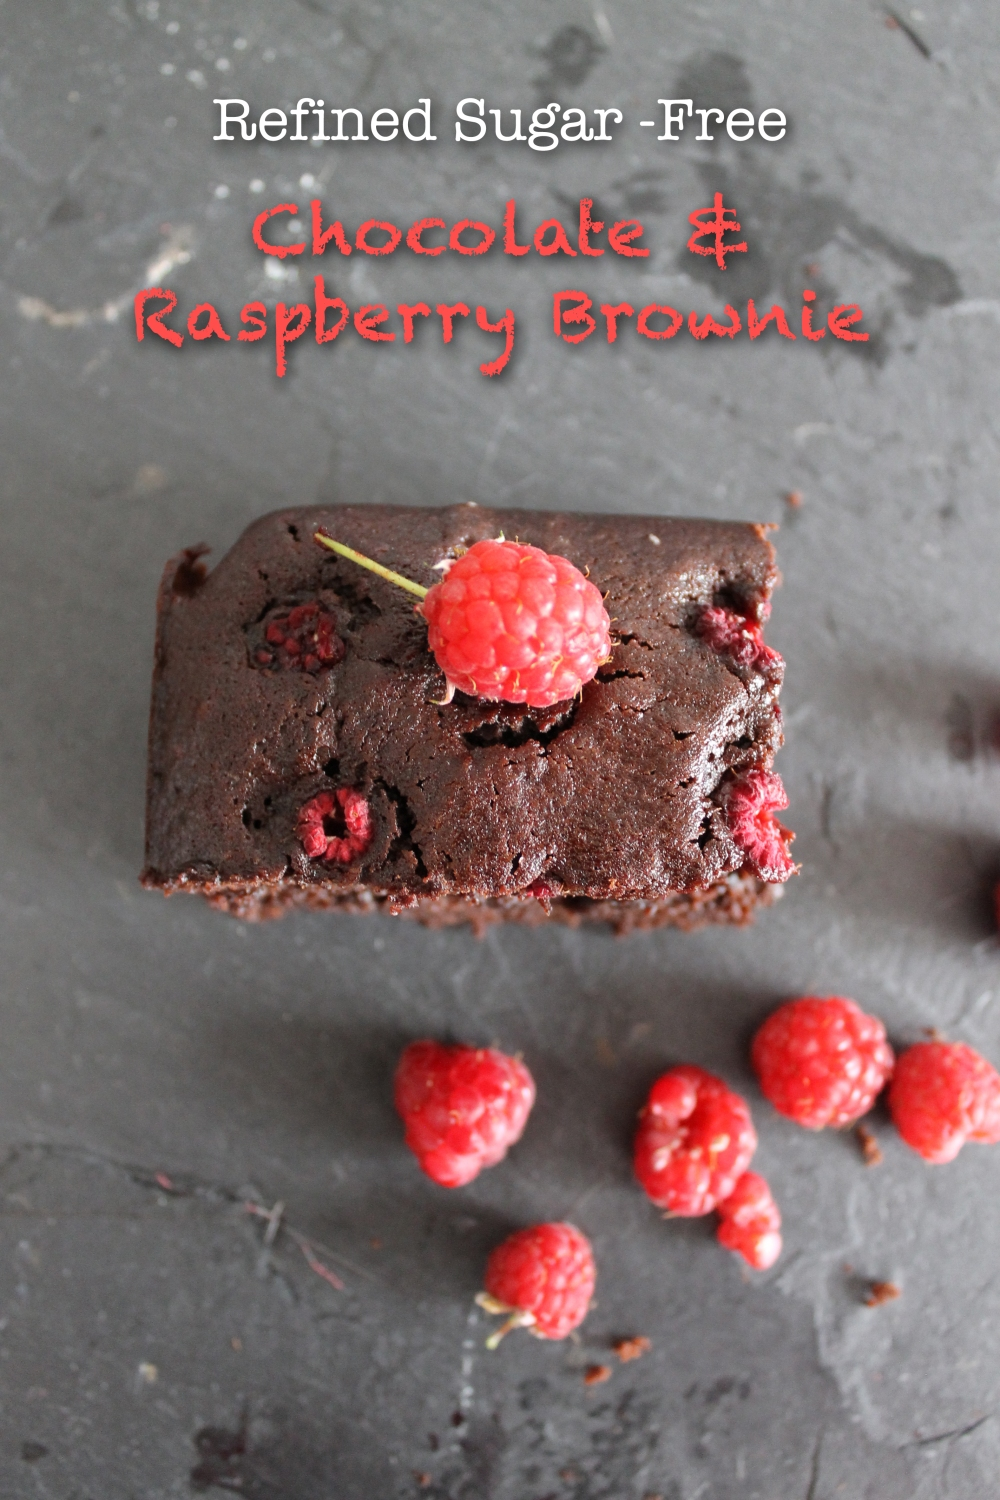 Chocolate & Raspberry Brownie